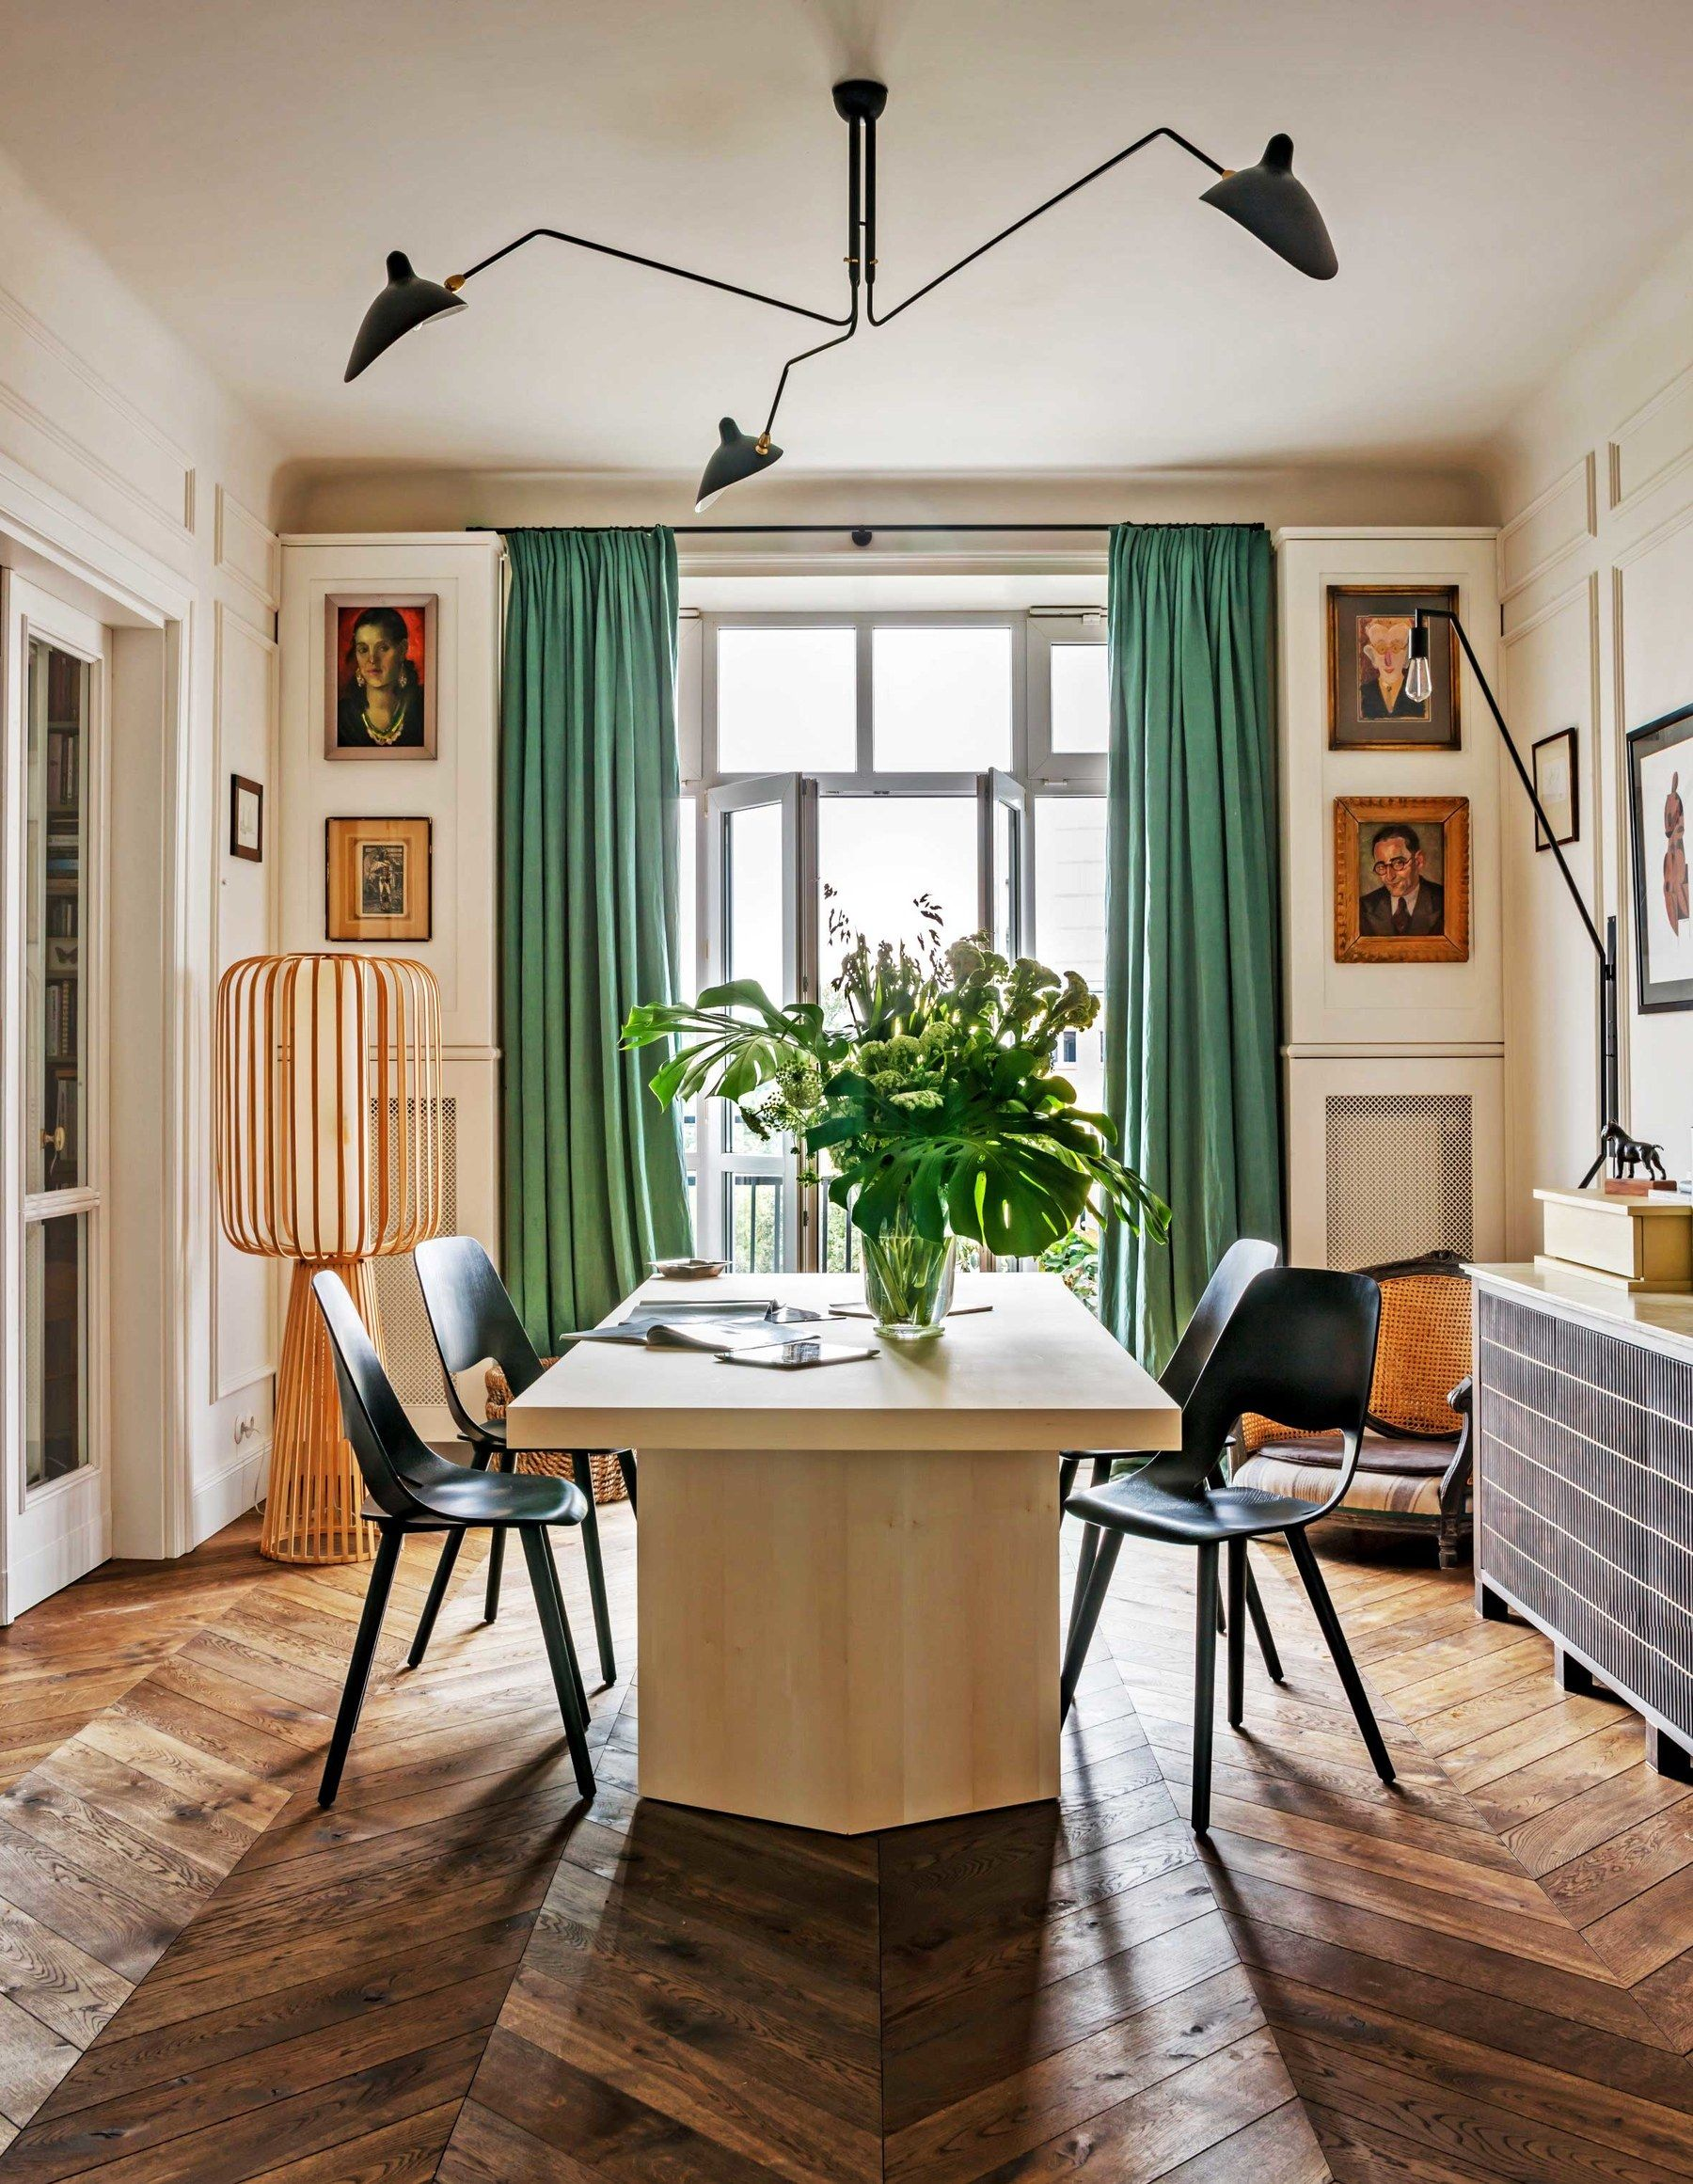 Colombe Design In Warsaw Poland Creates A Prewar Home With Paris Influences Architectural Digest In 2020 Farmhouse Dining Room Room Design Dining Room Inspiration